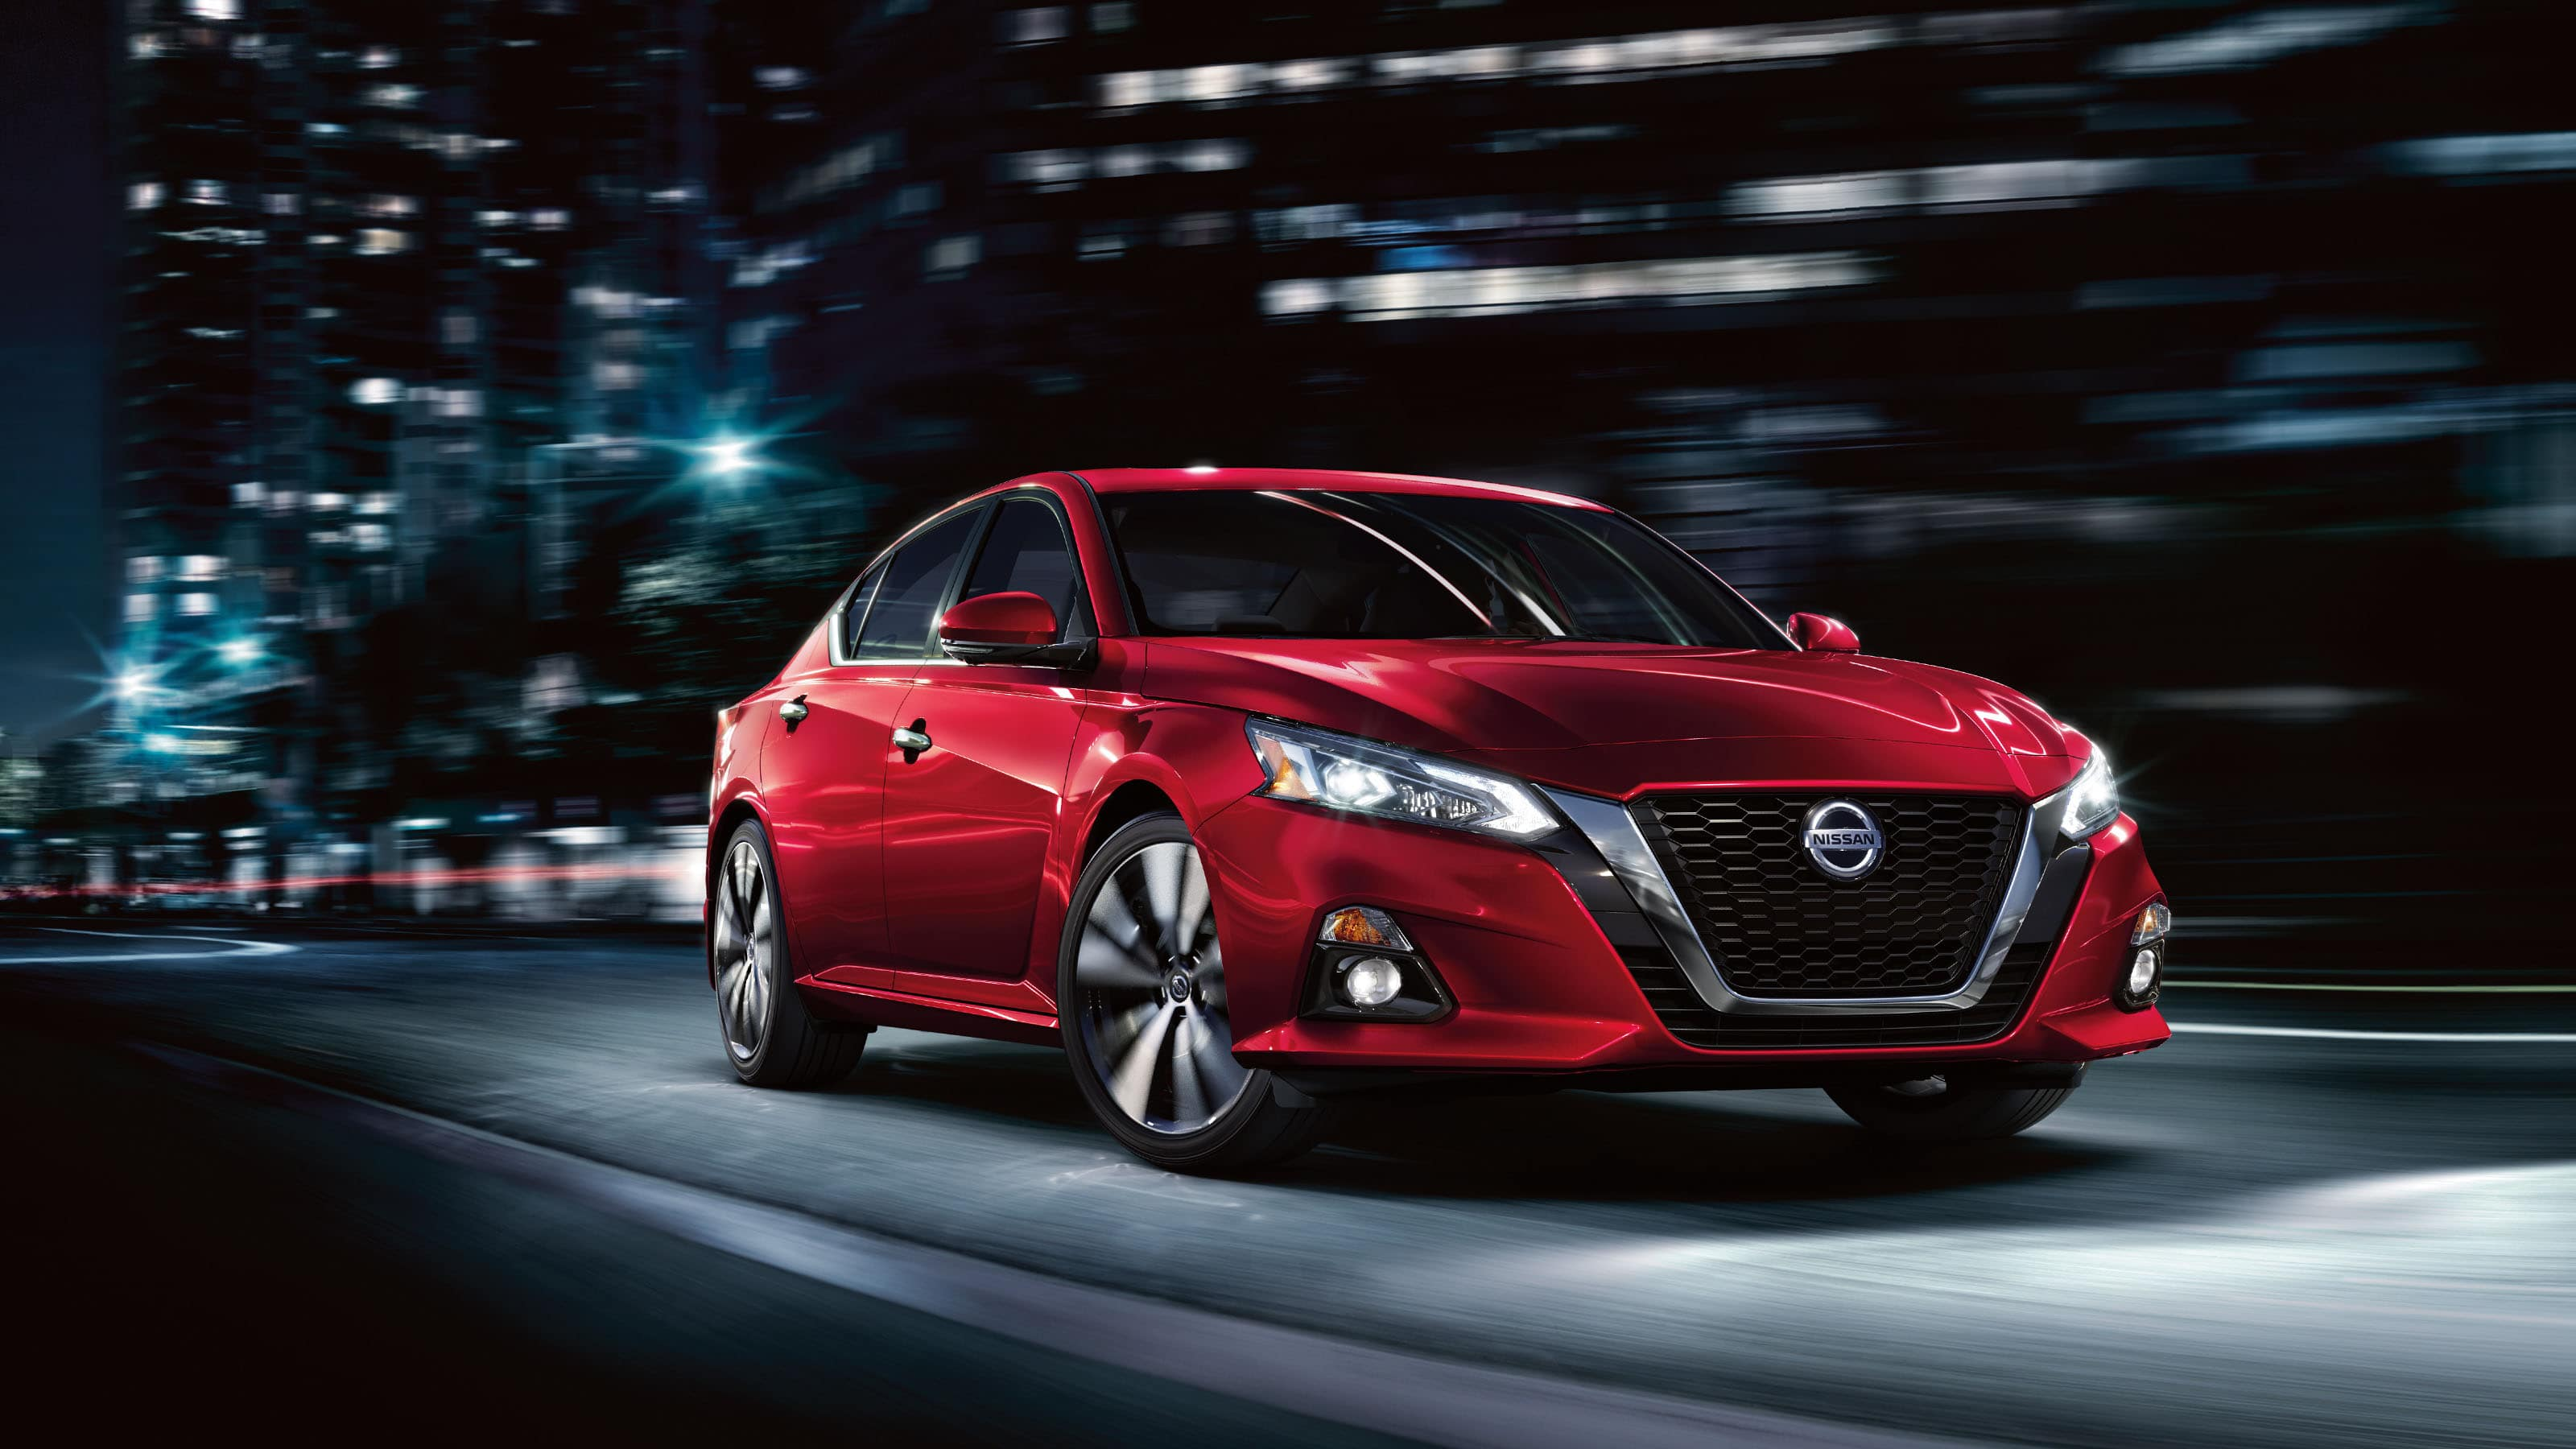 2020 Nissan Altima Front Red Exterior